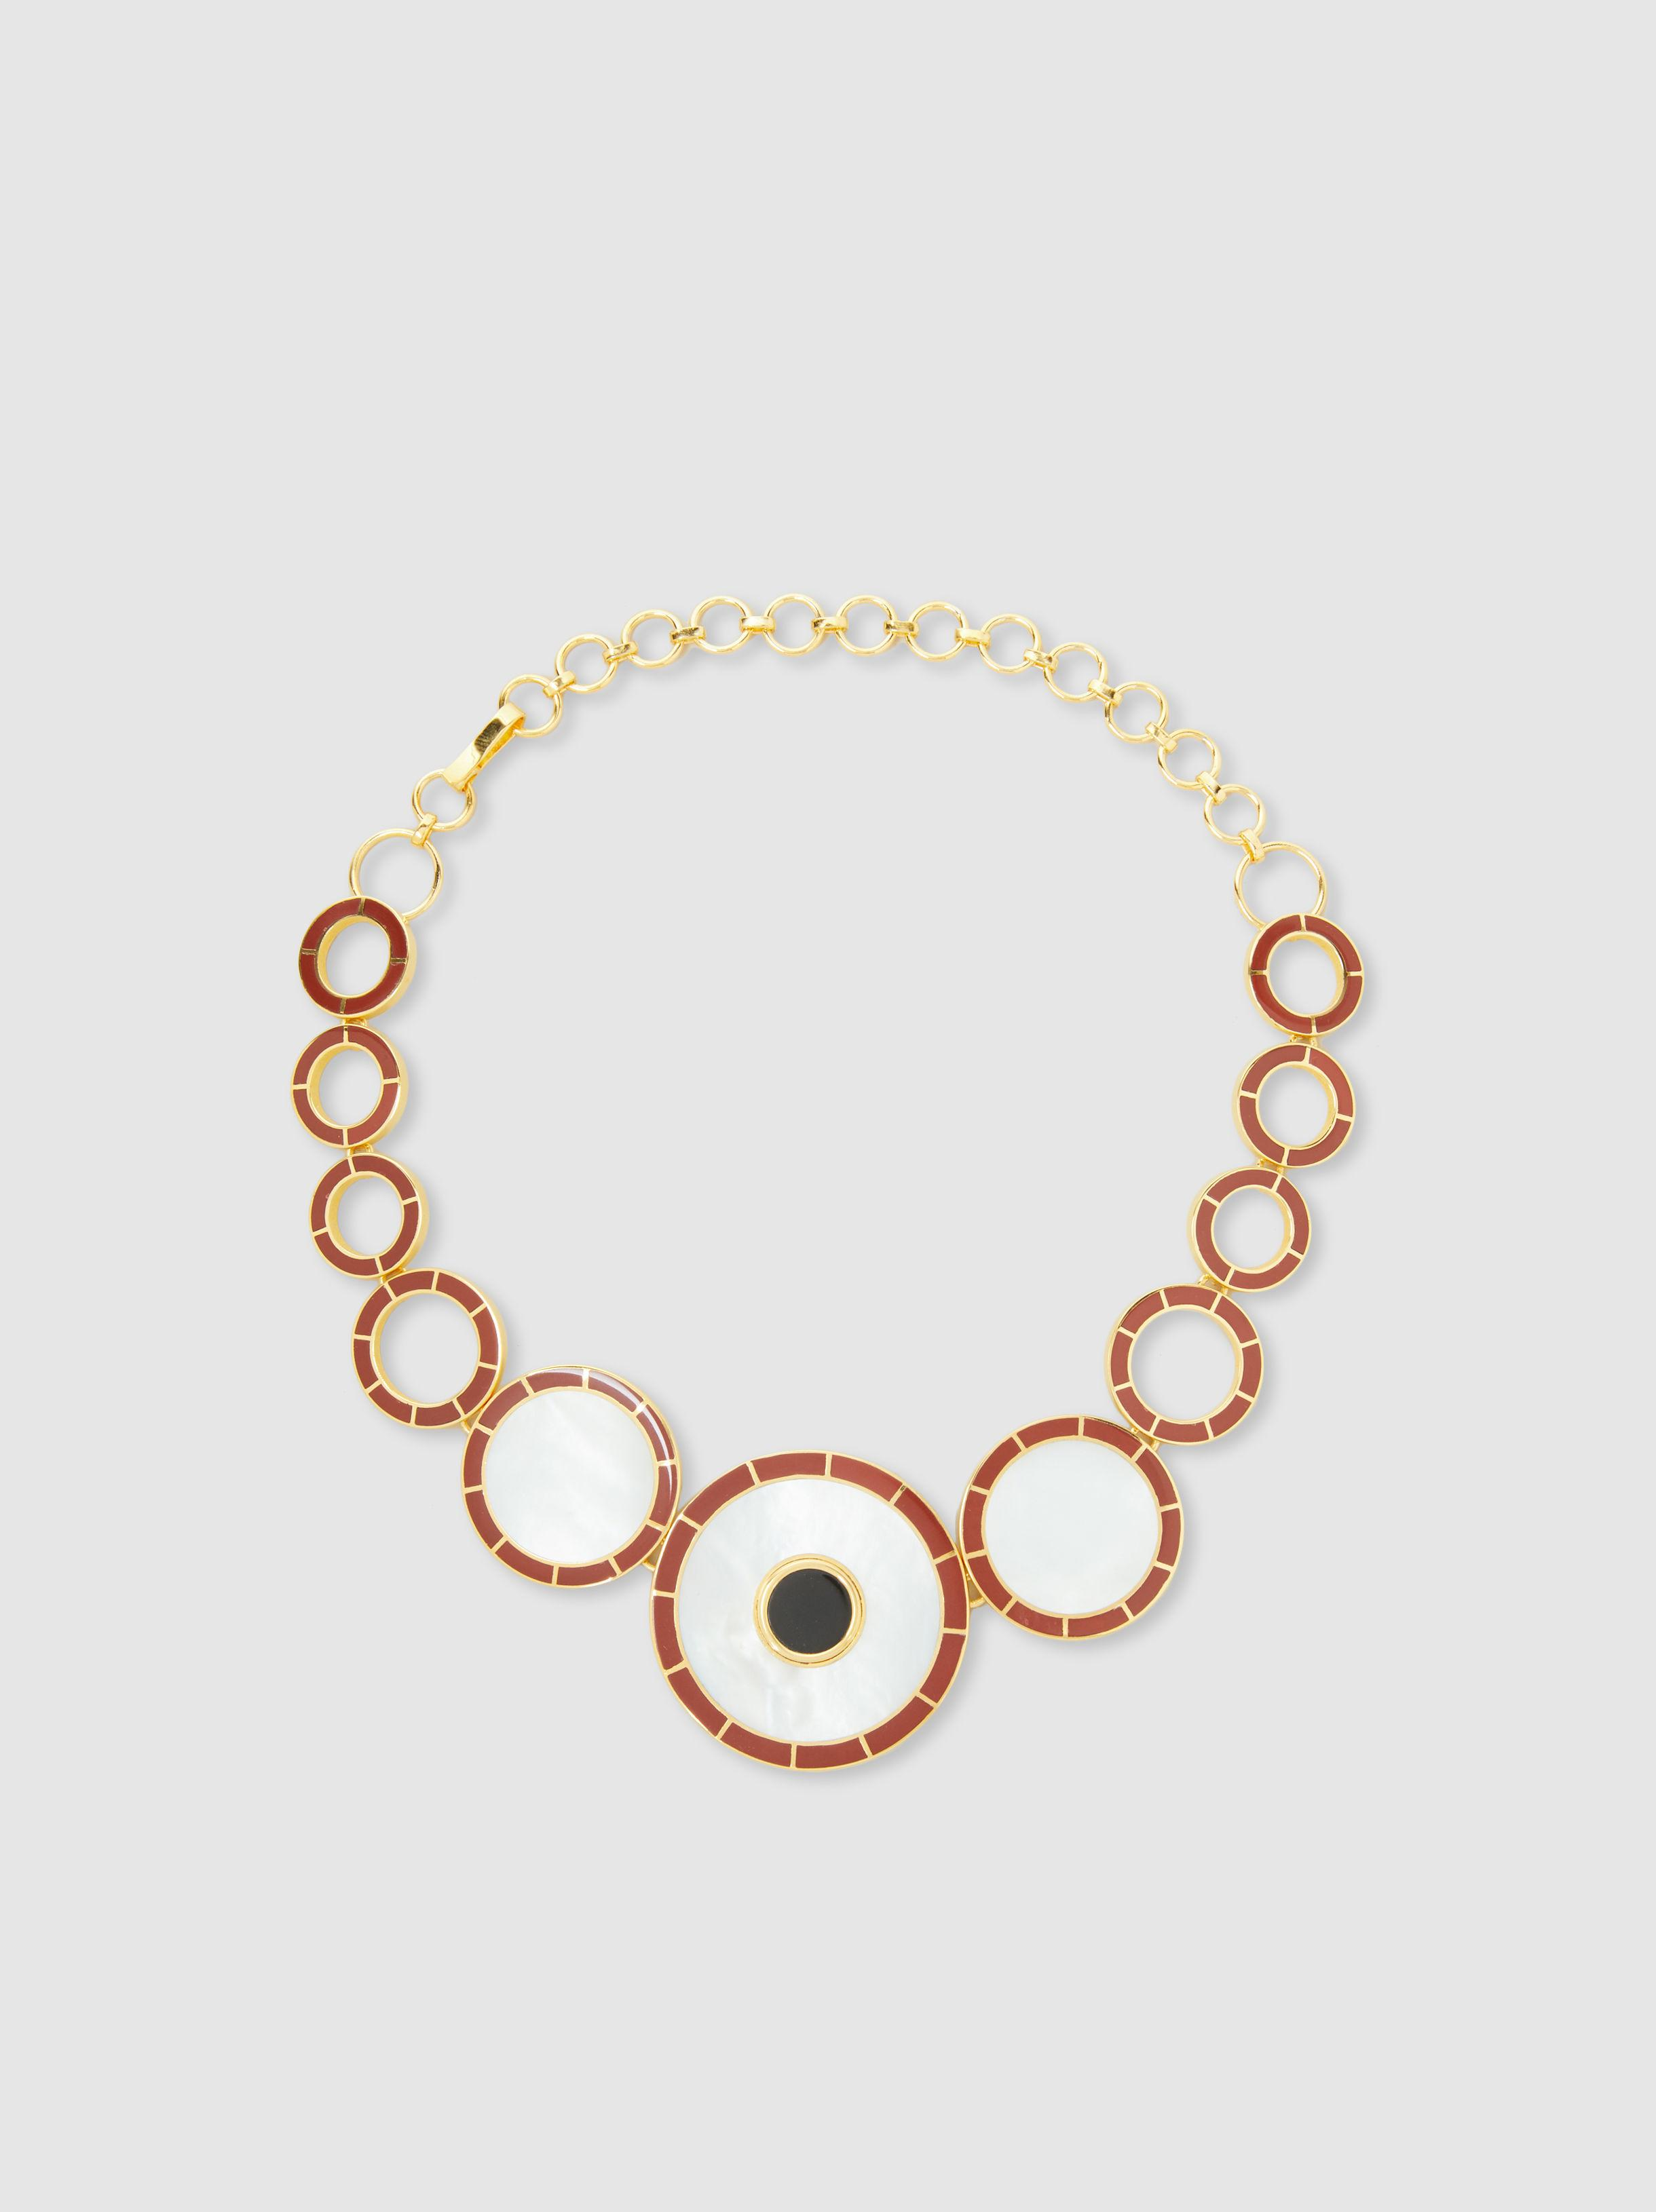 Monica Sordo Brujo Orbit Necklace yBGs2Hn